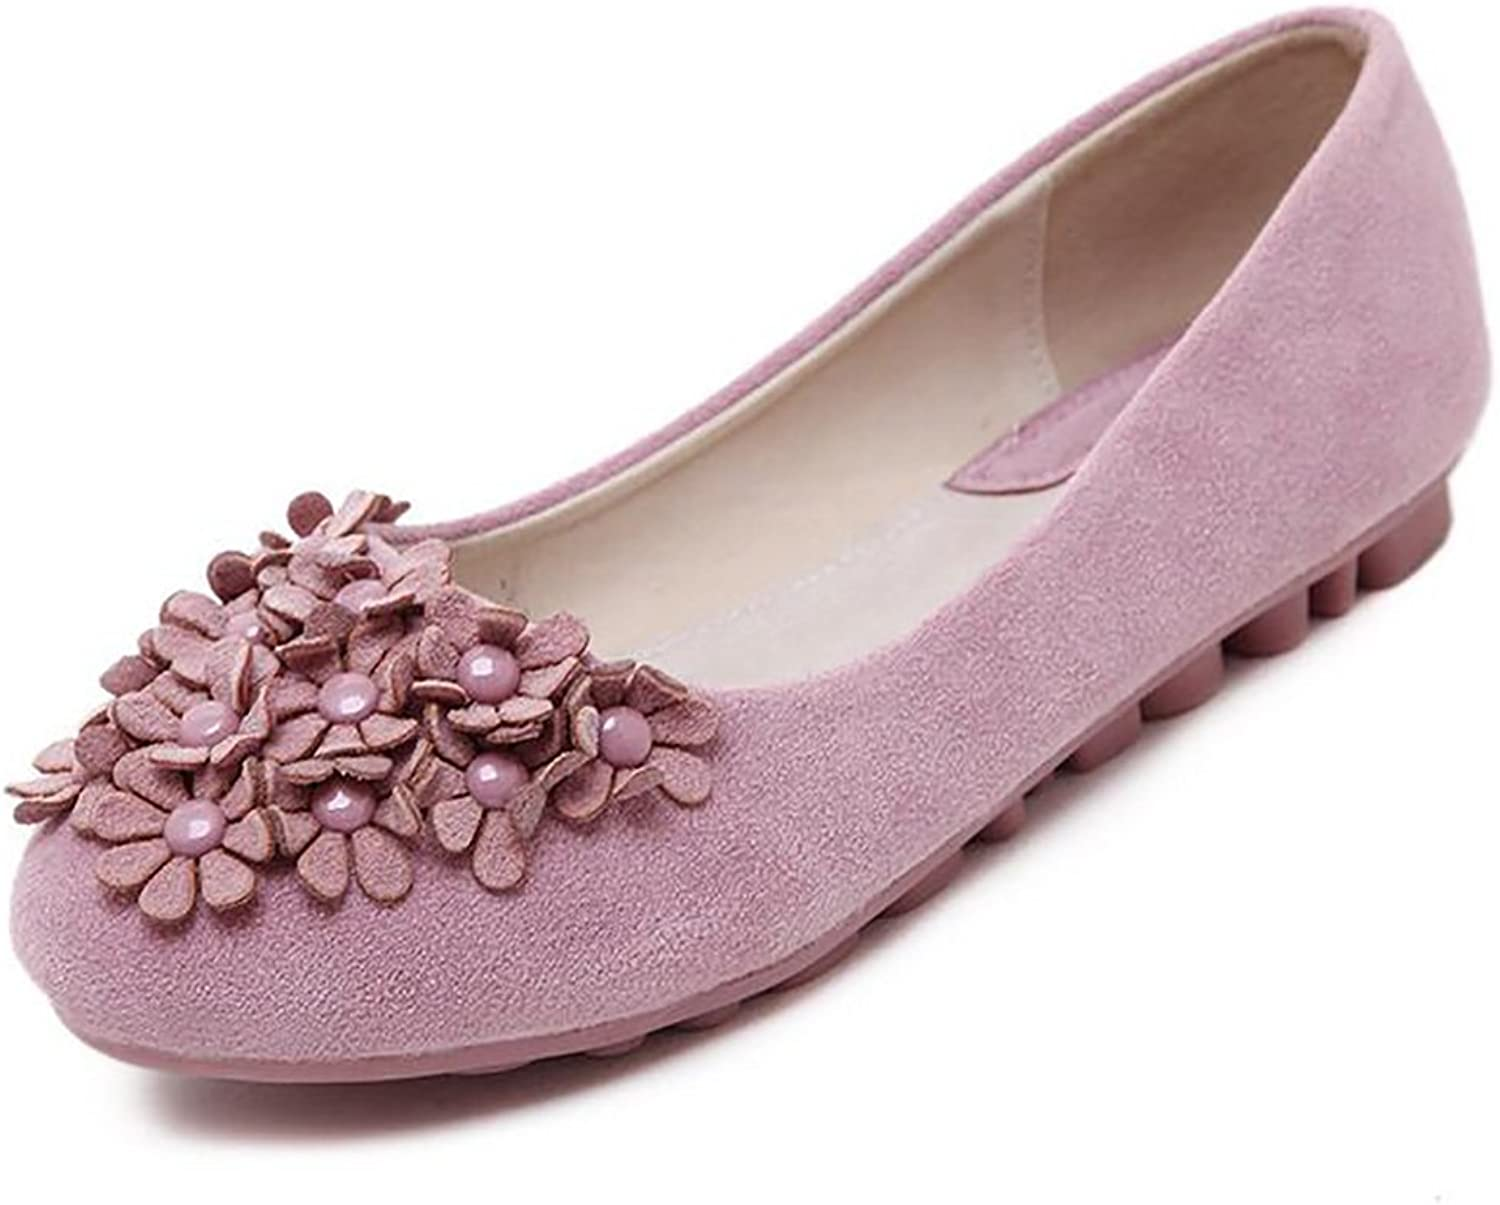 BININBOX Women's Flowers Flat shoes Round Toe Loafers